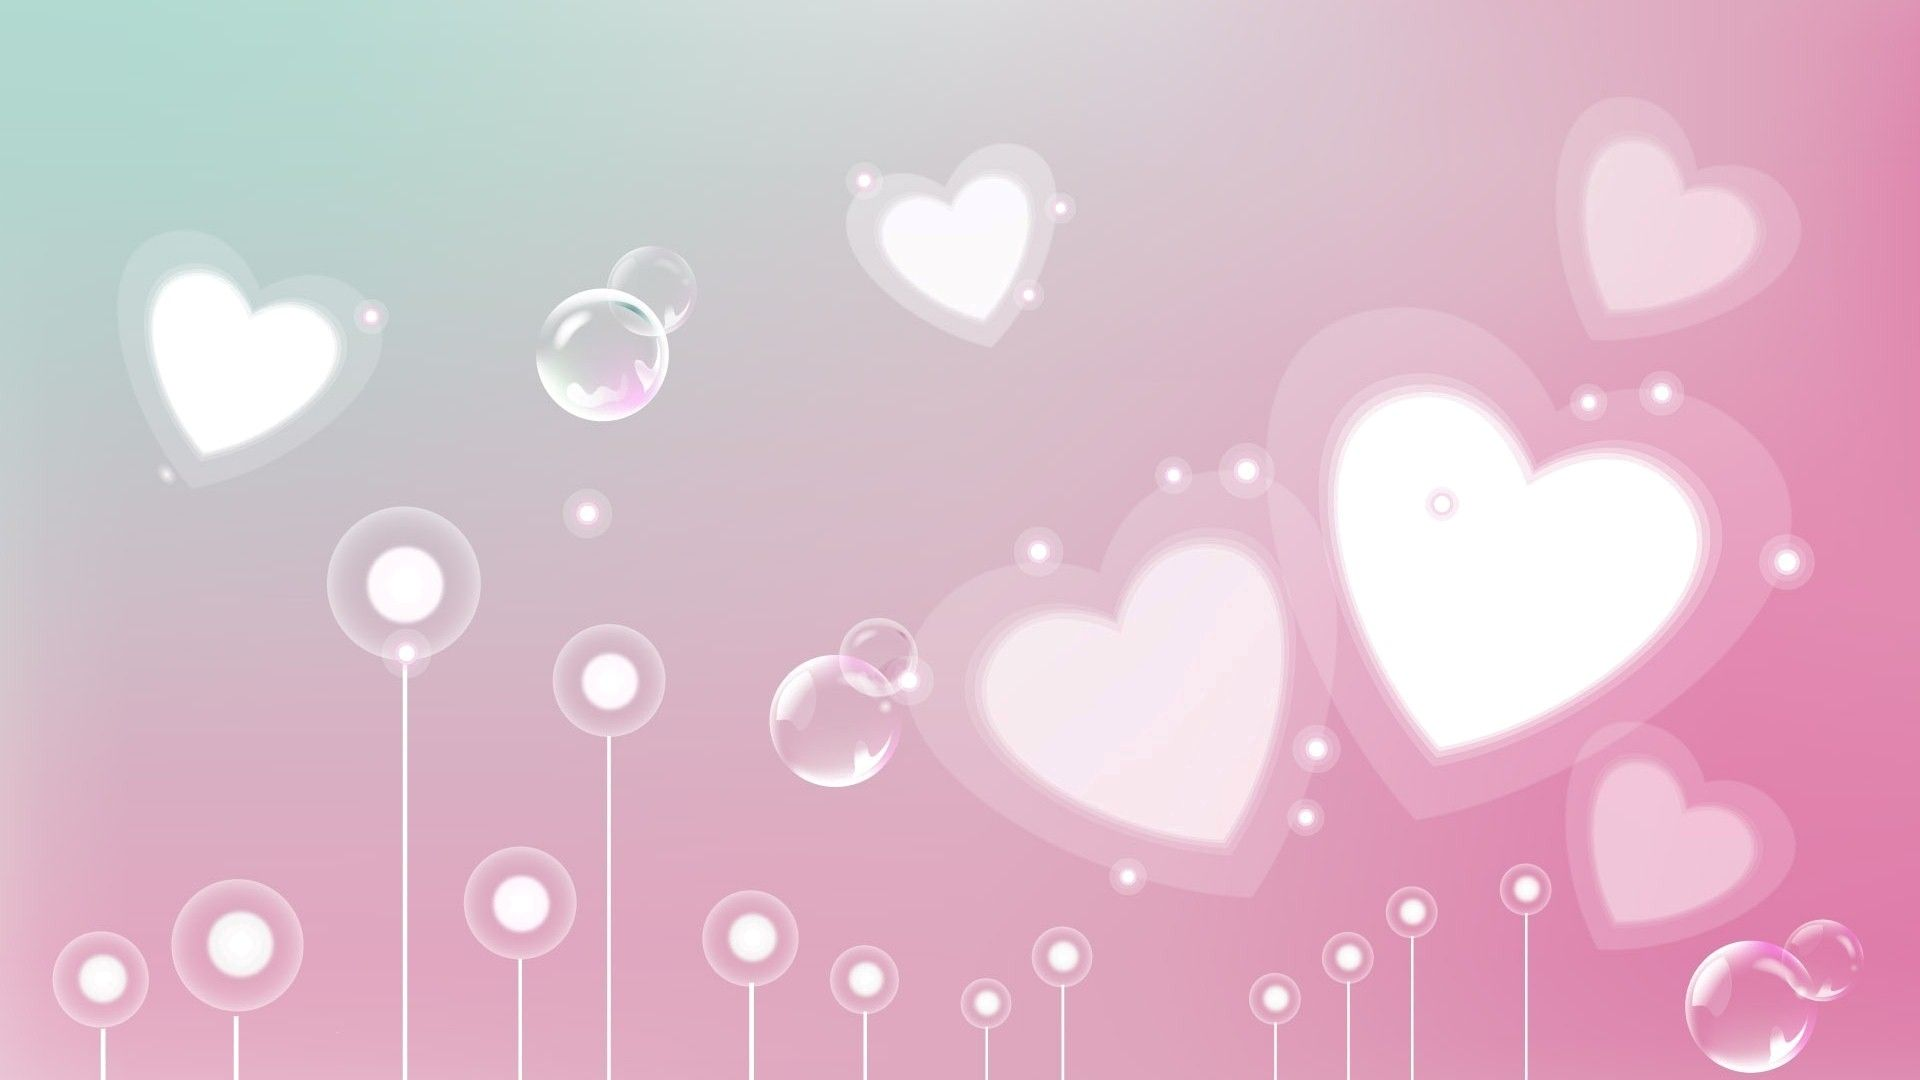 Pin By Cool Wallpapers On Hearts Pink Heart Background Heart Wallpaper Valentines Wallpaper